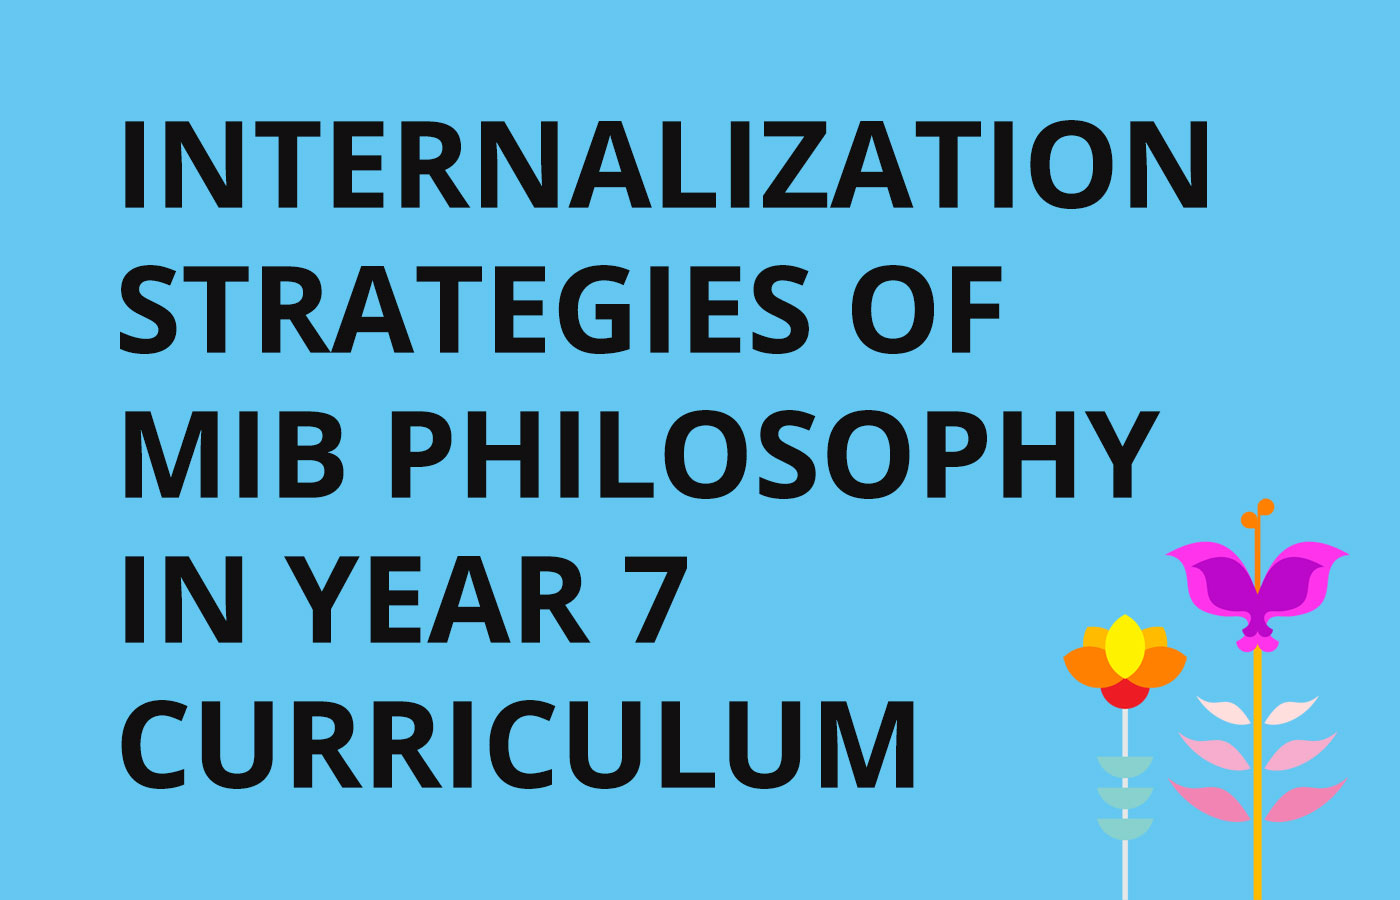 Seminar on Internalization Strategies of MIB Philosophy in Year 7 Curriculum